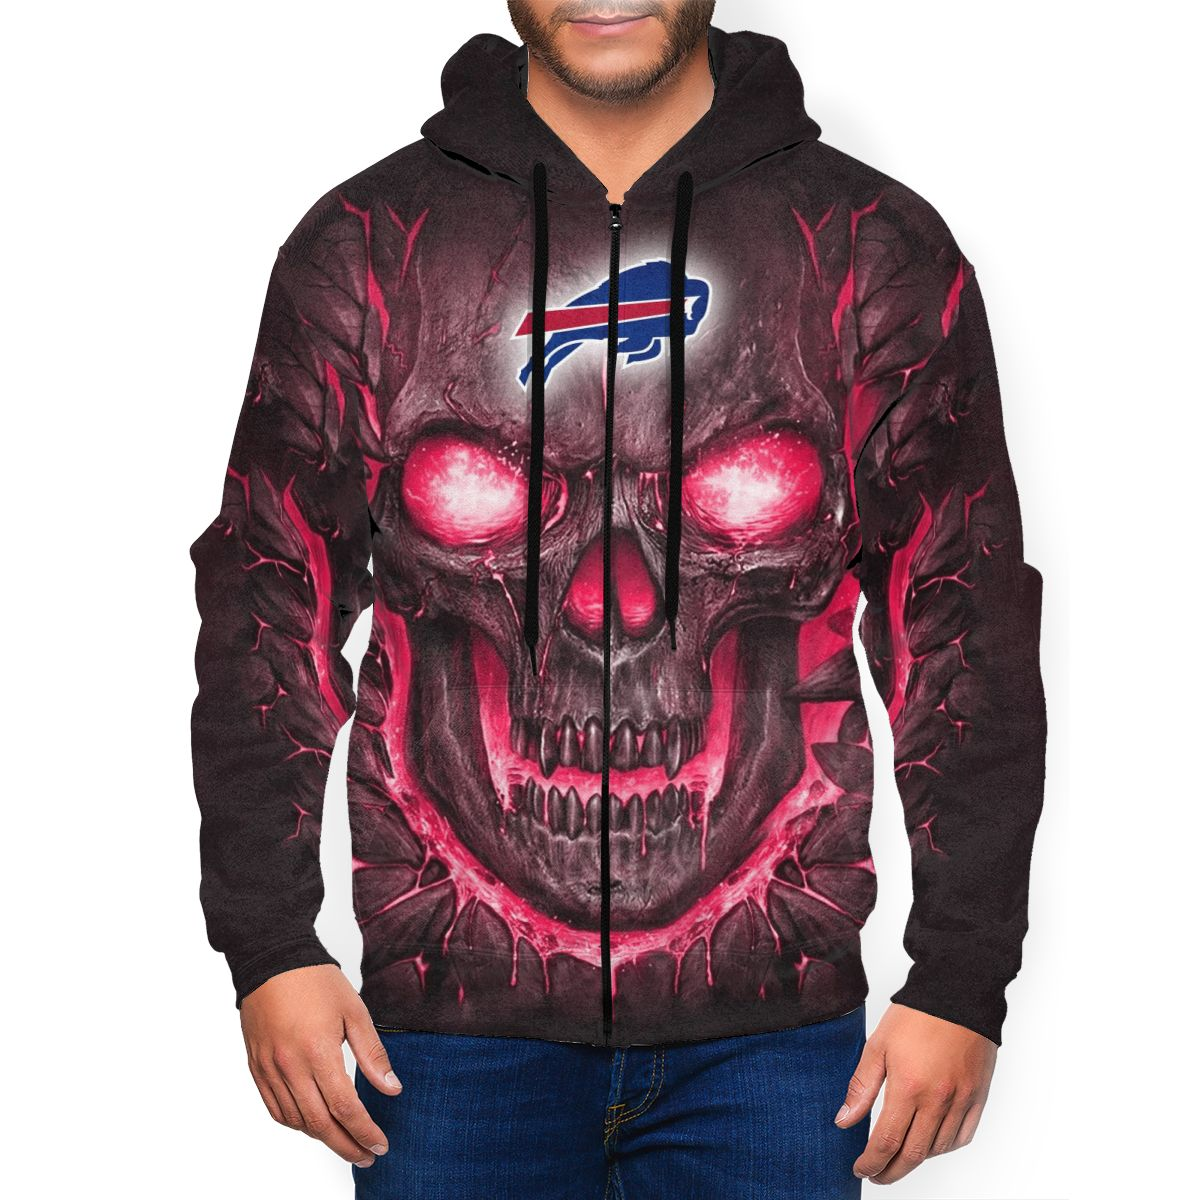 Bills Skull Lava Men's Zip Hooded Sweatshirt